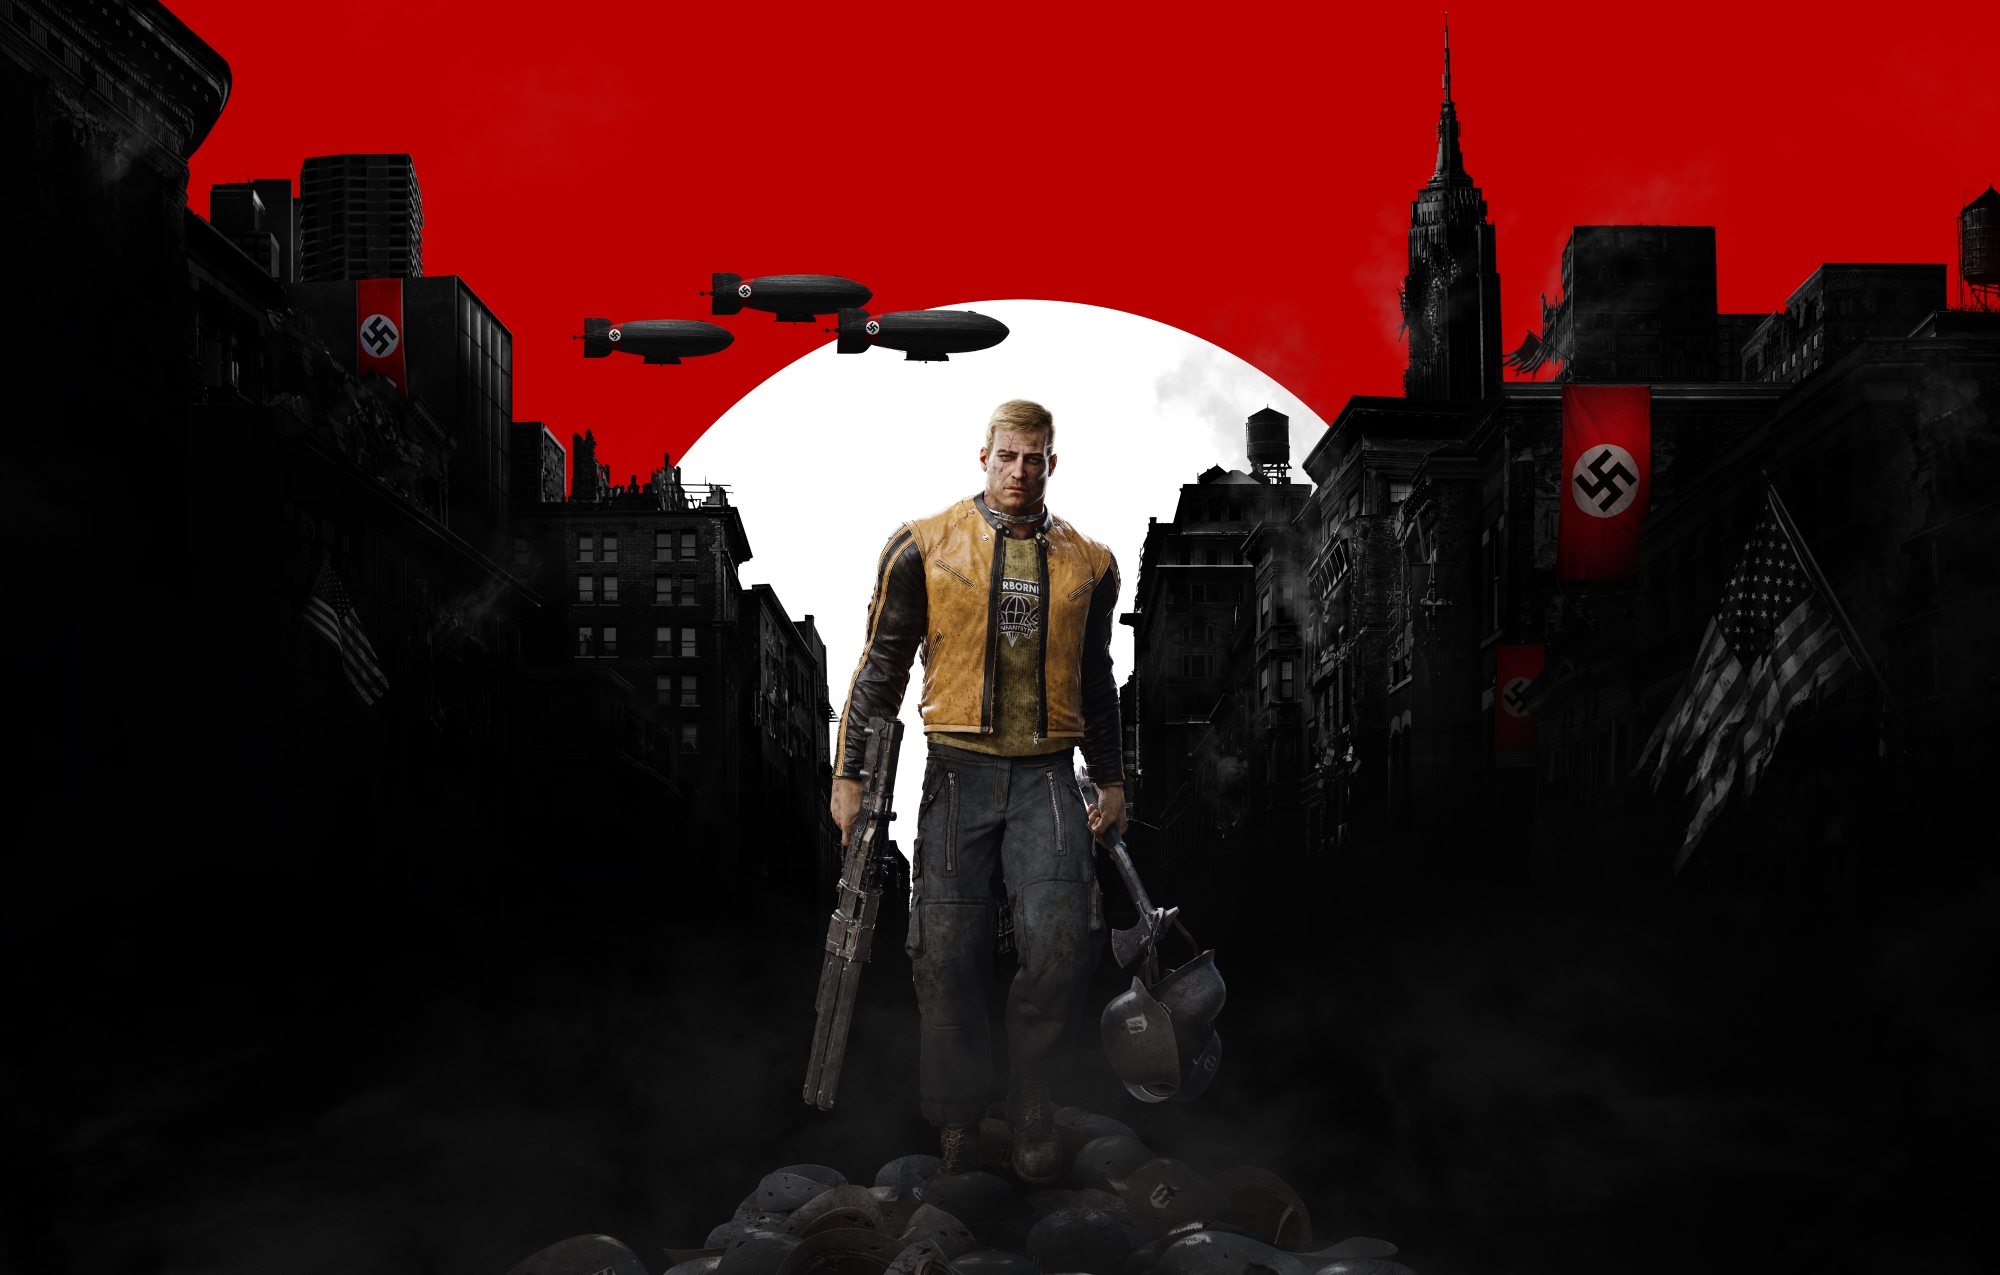 Wolfenstein II: The New Colossus hands-on preview and interview – 'We're doing things that are outside of a well-trodden path'